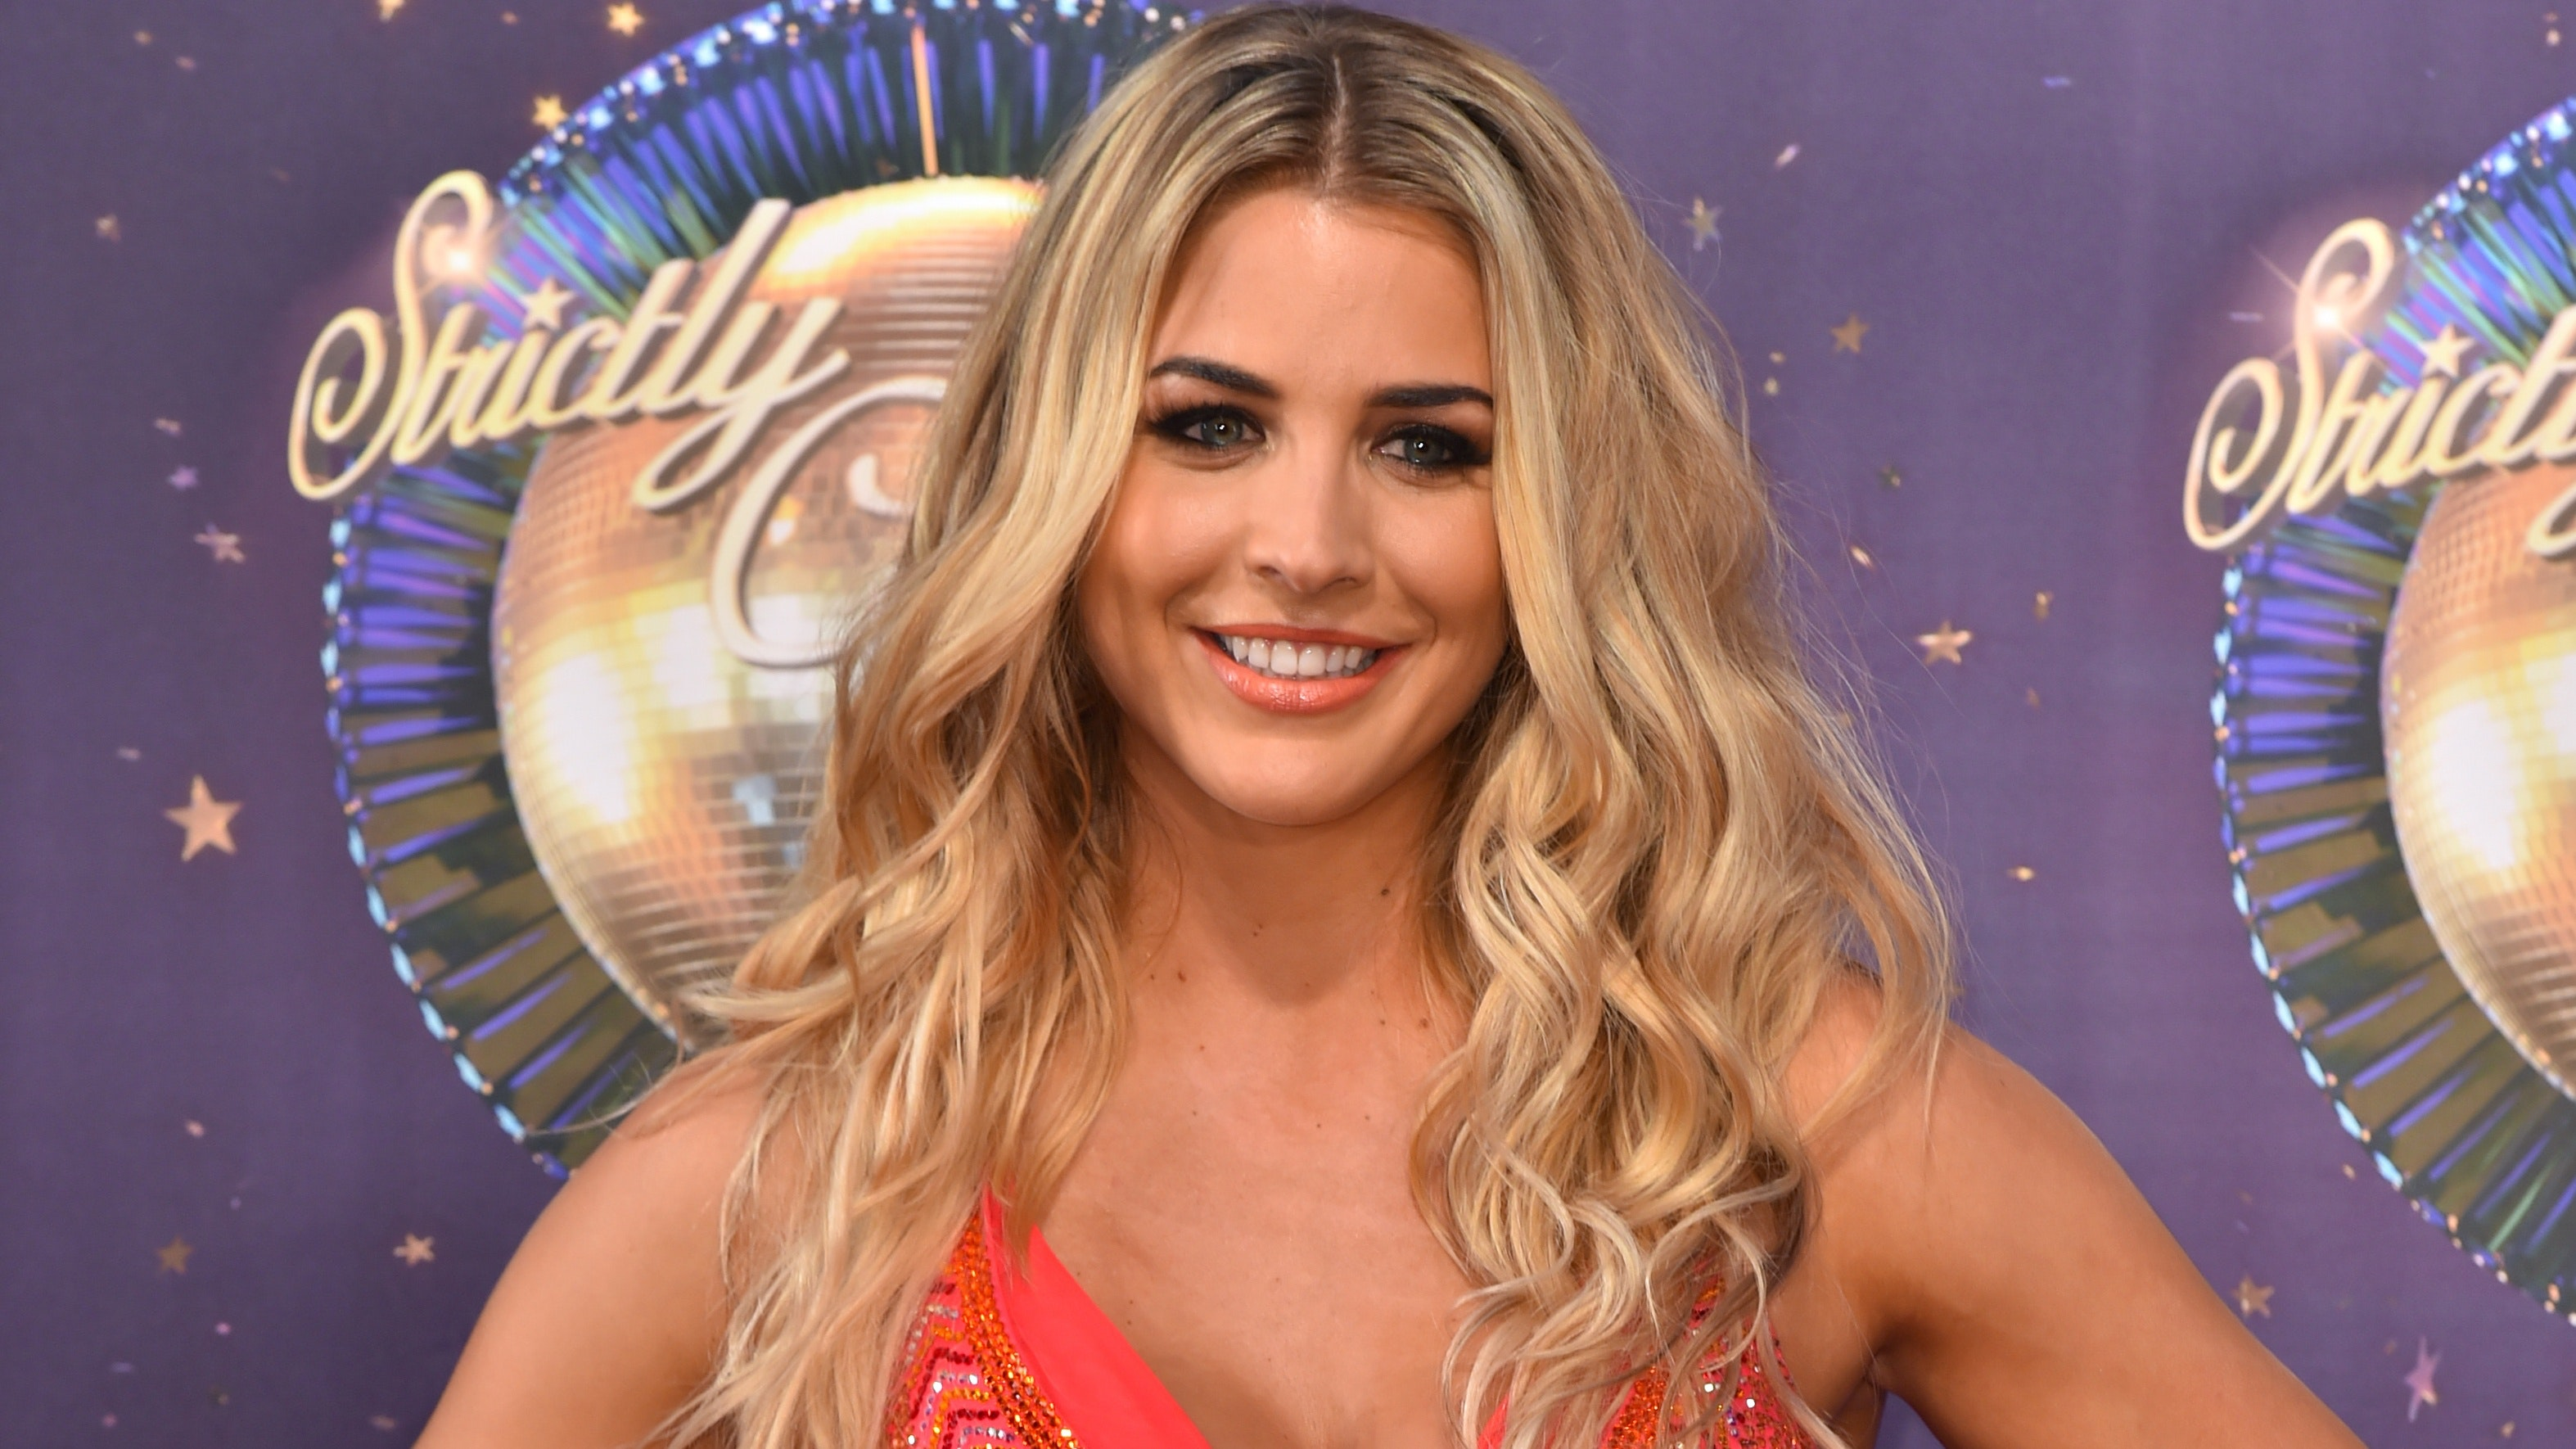 Gemma Atkinson Finally Confirms Relationship With 'Strictly' Partner Gorka Marquez